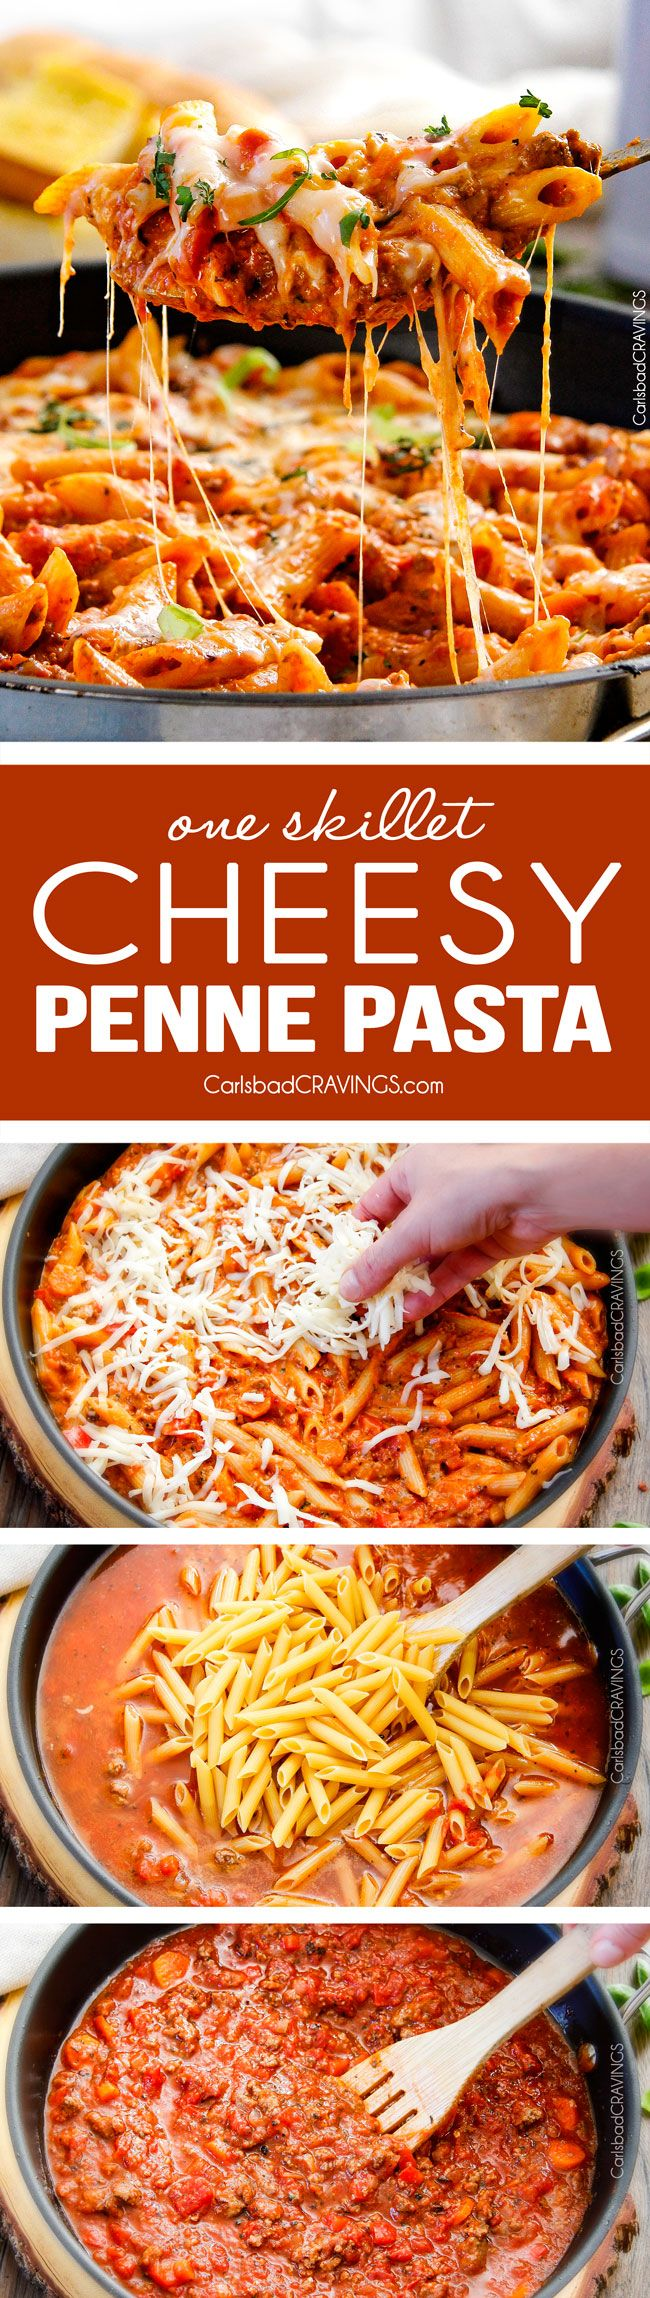 One Skillet Cheesy Penne - the best homemade ragu sauce simmered right with the pasta then loaded with cheese! My family begs me to make this weekly!